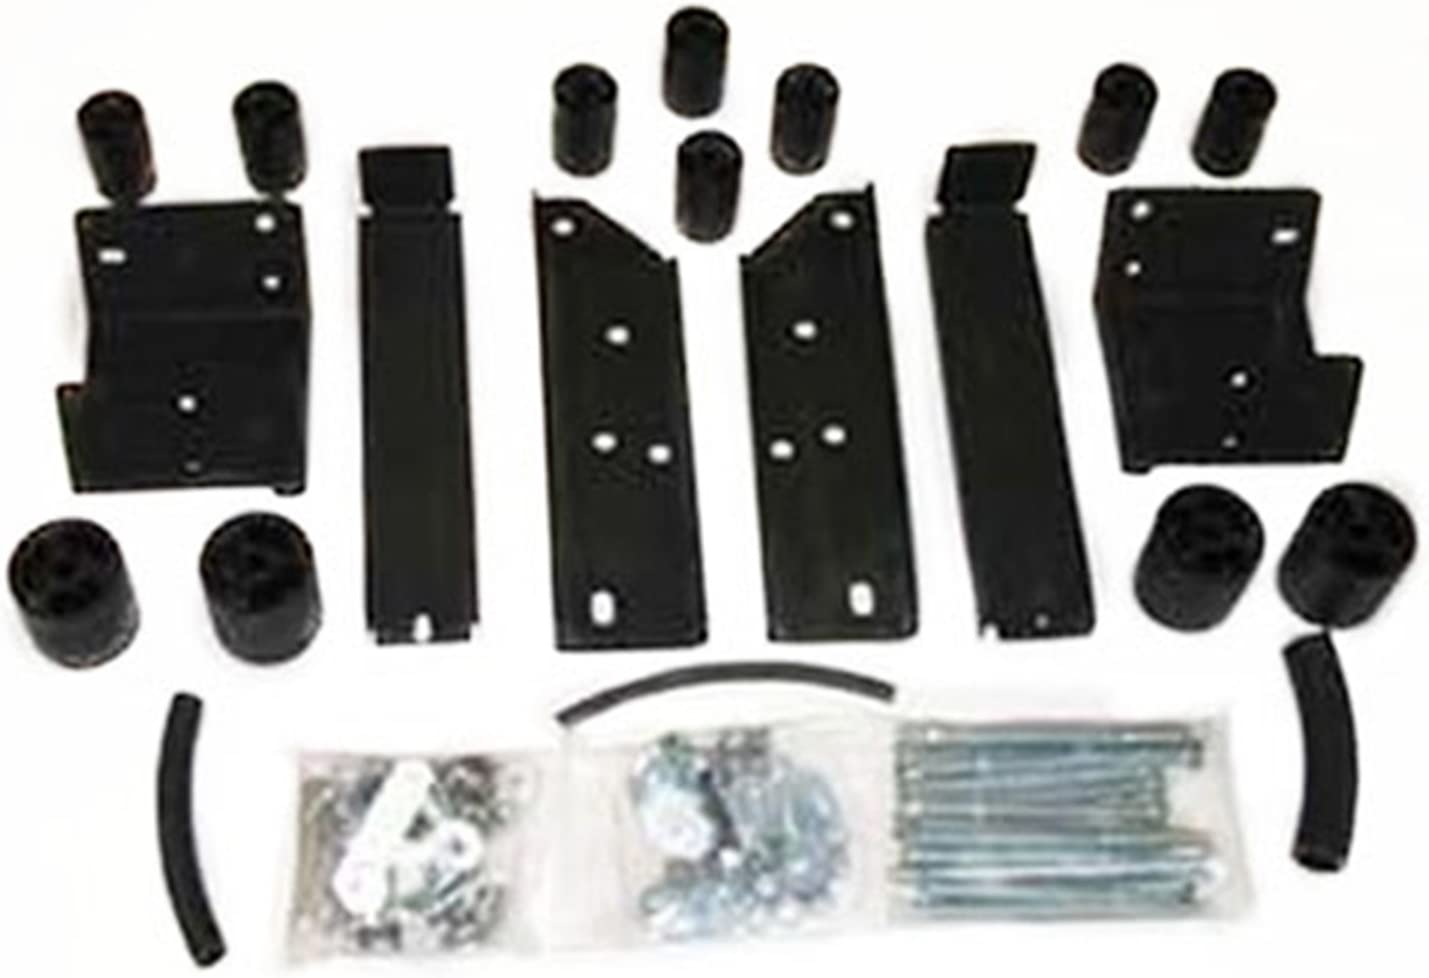 PA5583 3 Body Lift Kit fits 2001 to 2002 6 Lugs Made in America Toyota Tacoma 4WD Std//Ext//Crew Cab Including 2WD TRD//Prerunner Performance Accessories